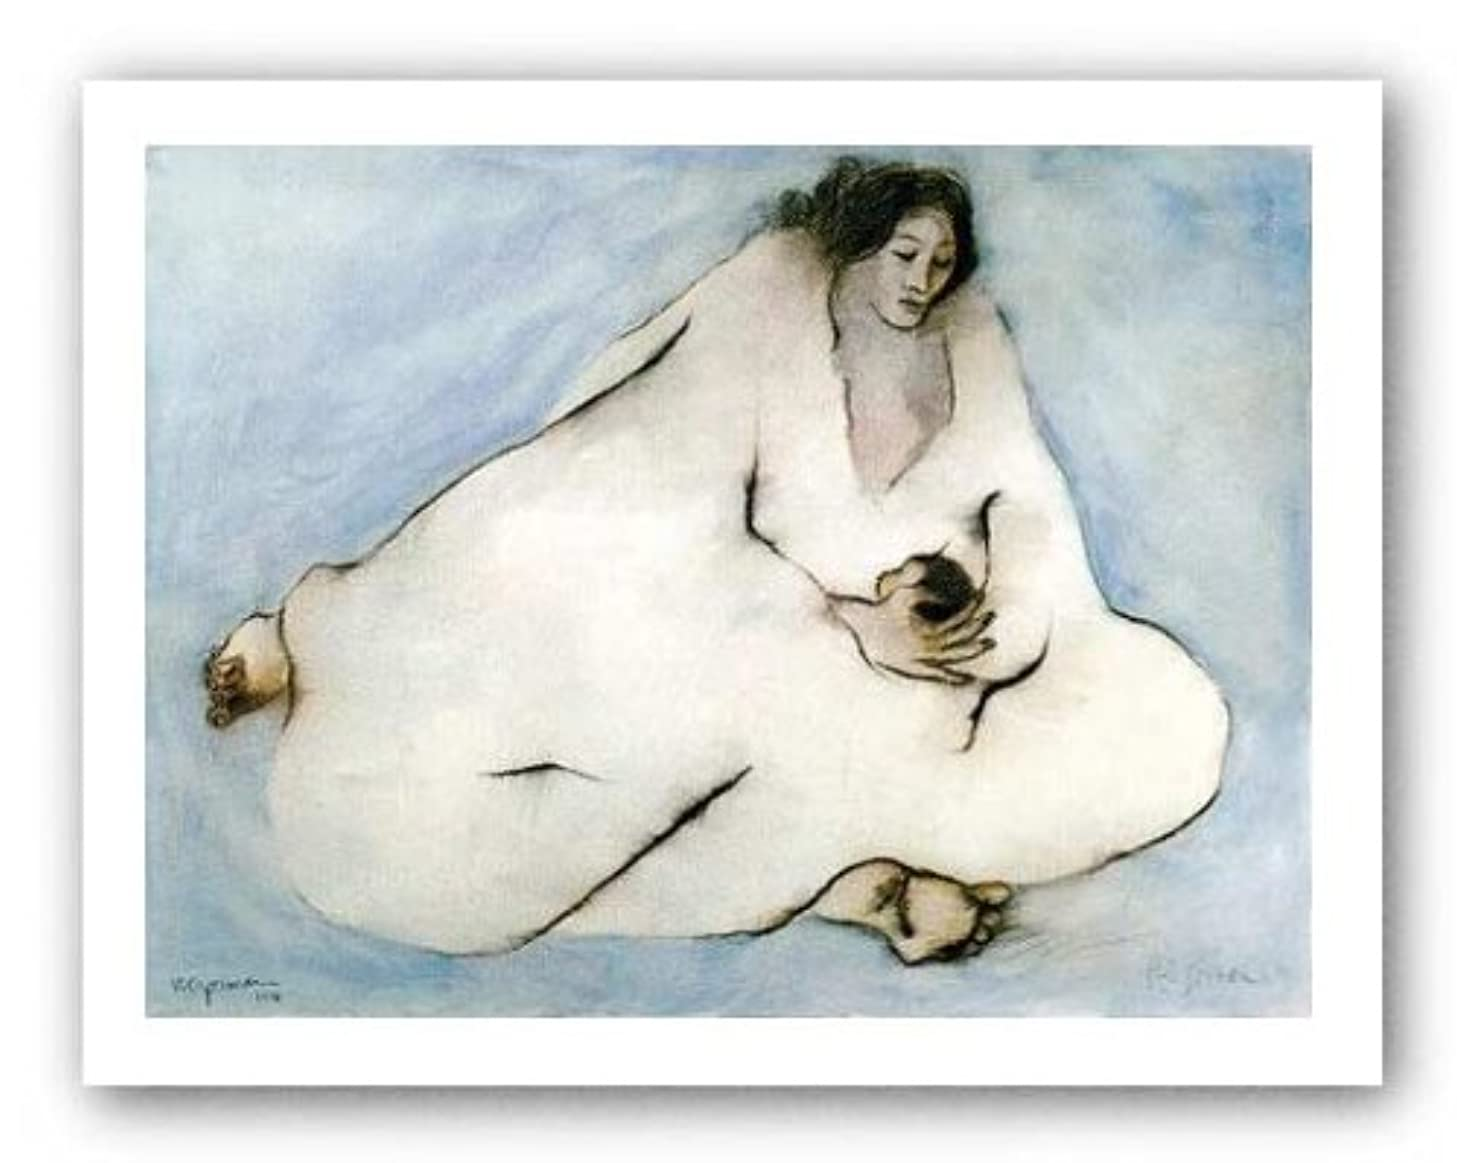 Mother and Child by R.C. Gorman - 18 x 25 inches - Fine Art Print / Poster